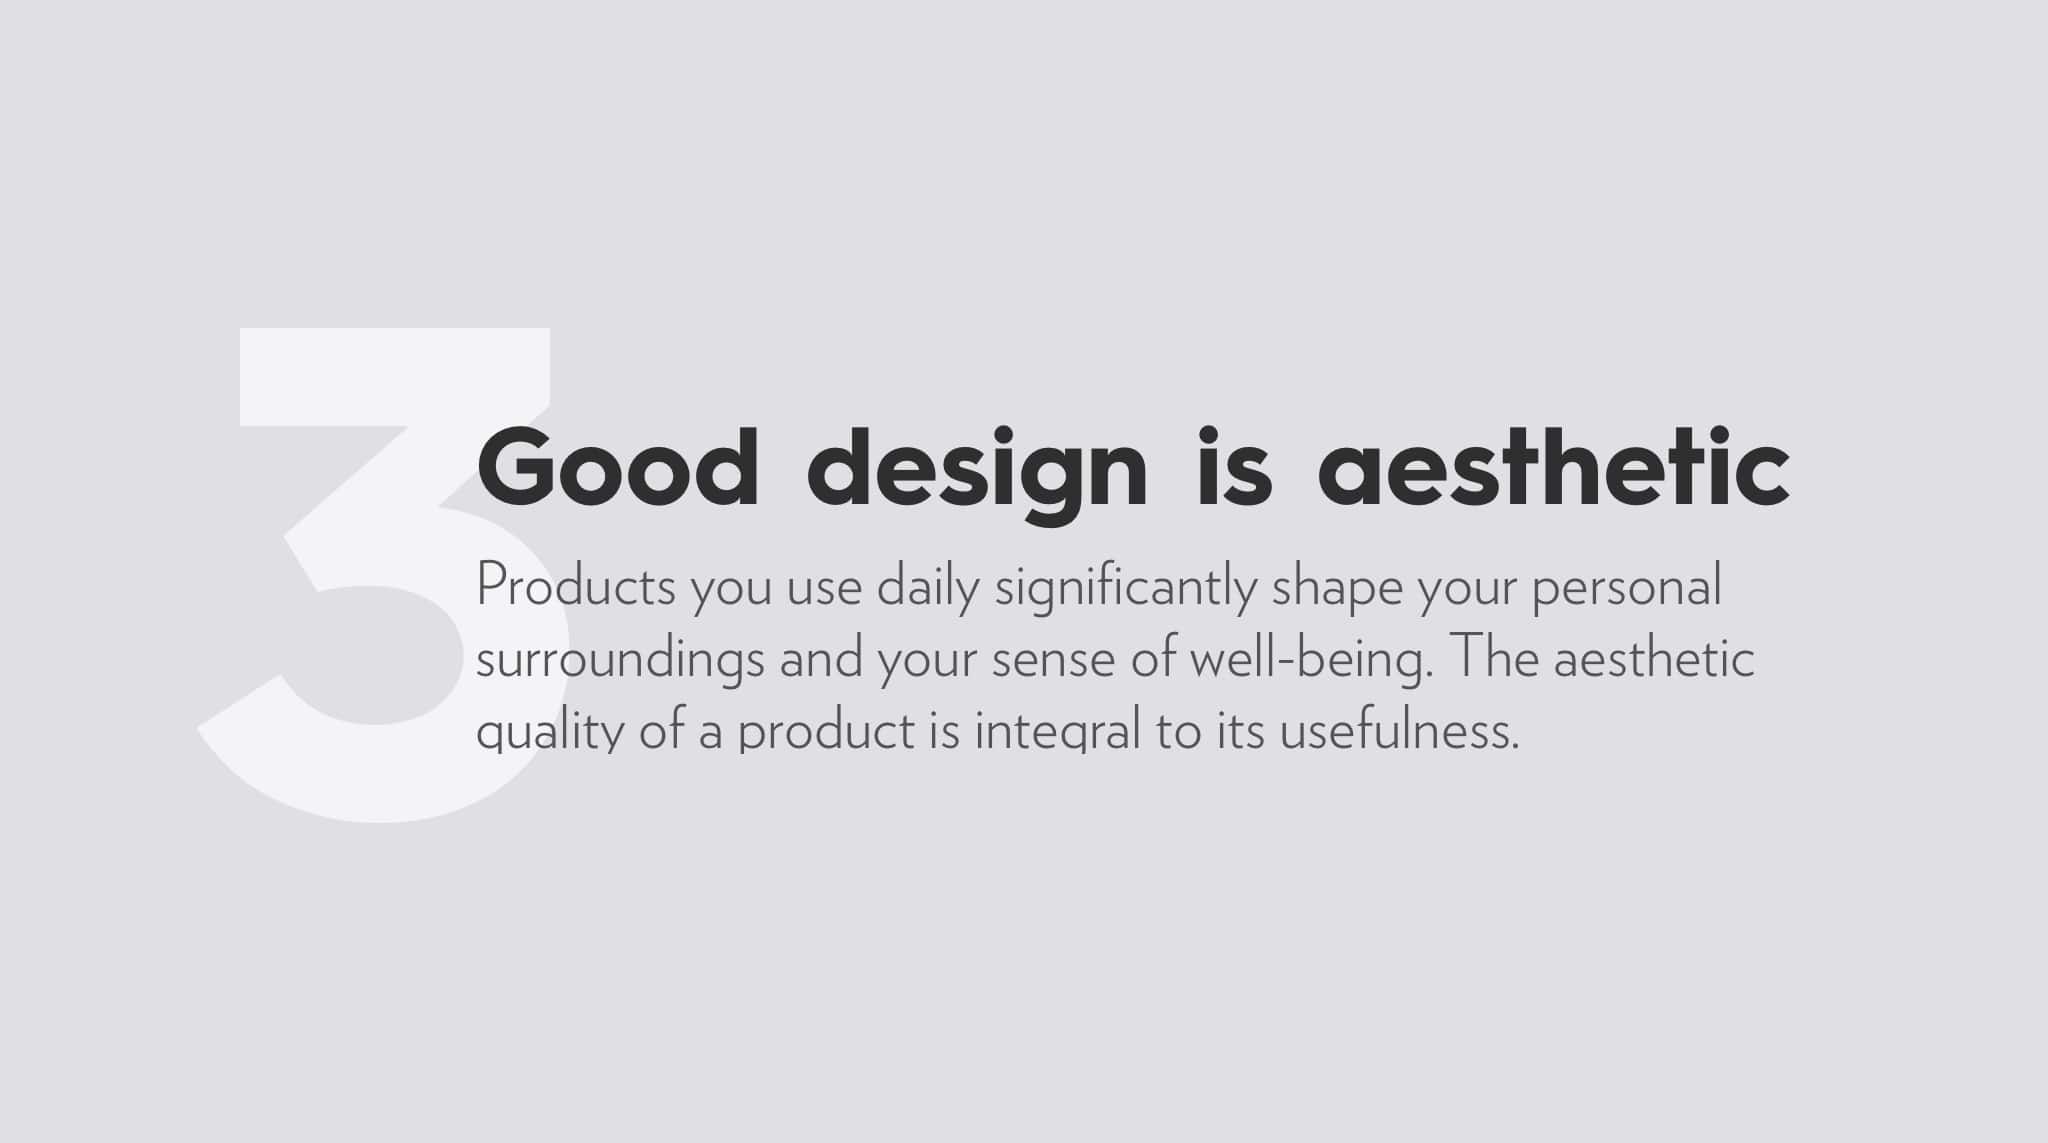 Ten Principles For Good Design by Dieter Rams, good design is aesthetic.